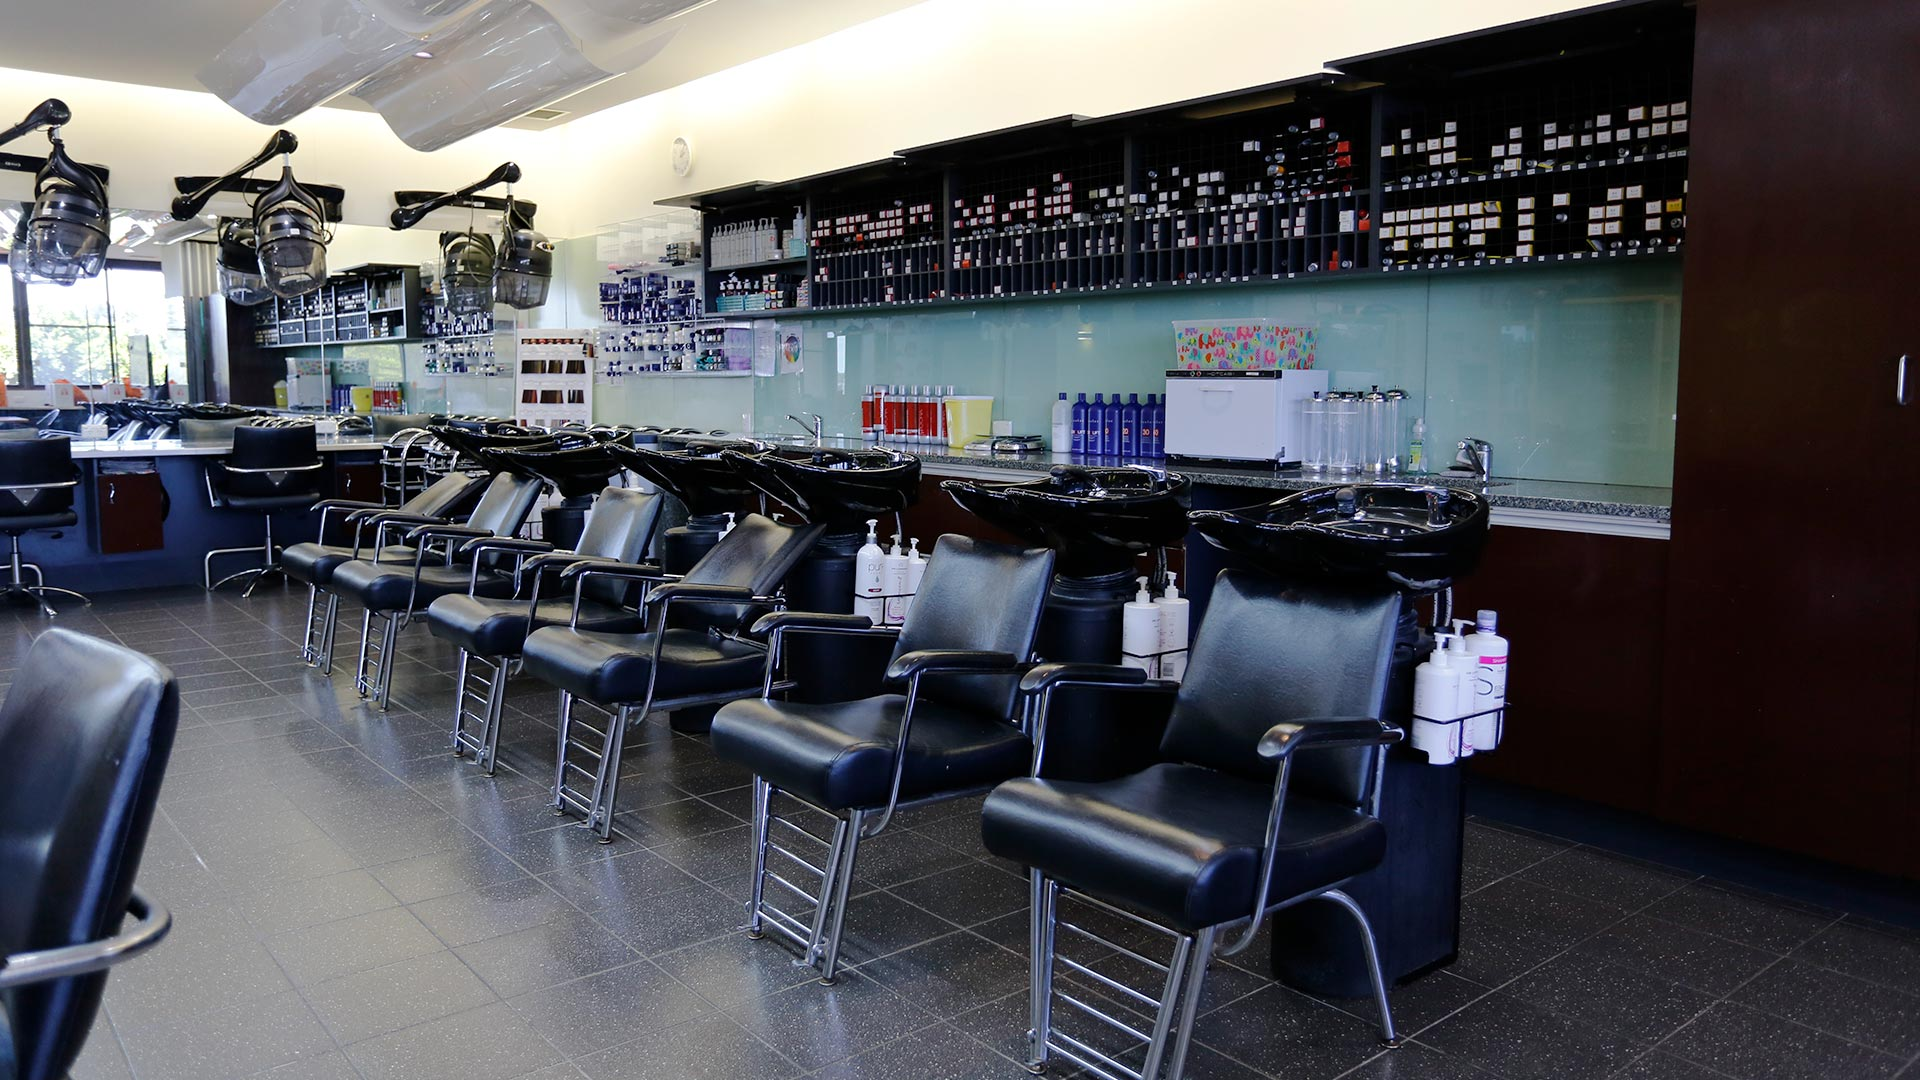 toowoomba-facilities-beauty-and-hairdressing-03.jpg